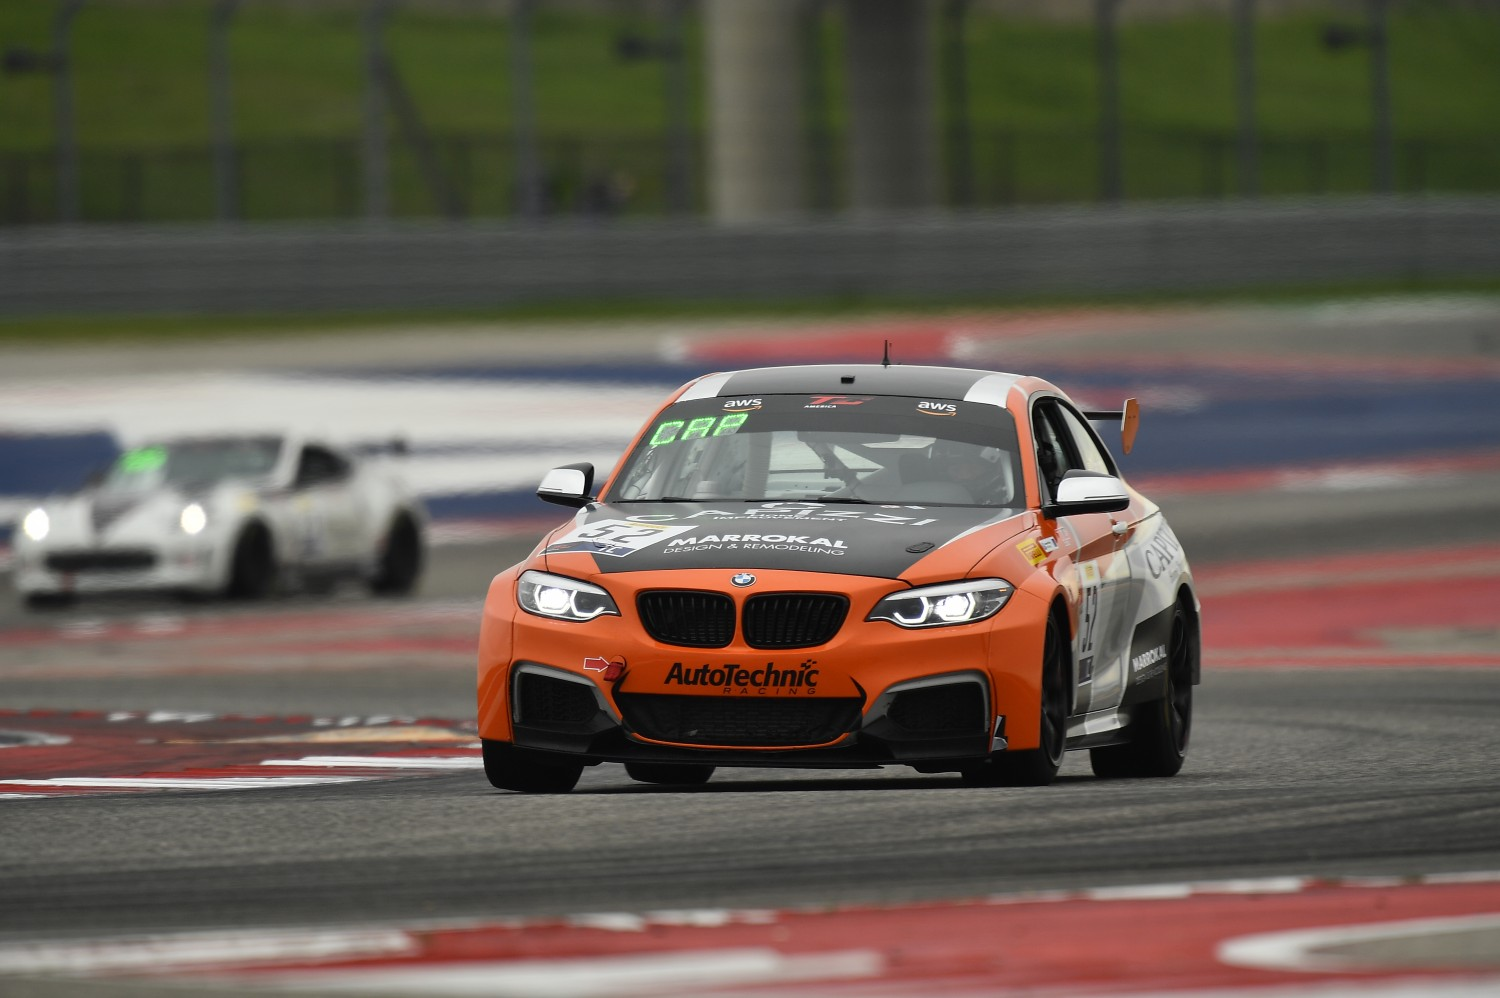 #52 TC, Auto Technic Racing, Tom Capizzi, BMW M240iR Cup, 2020 SRO Motorsports Group - Circuit of the Americas, Austin TX  | SRO Motorsports Group